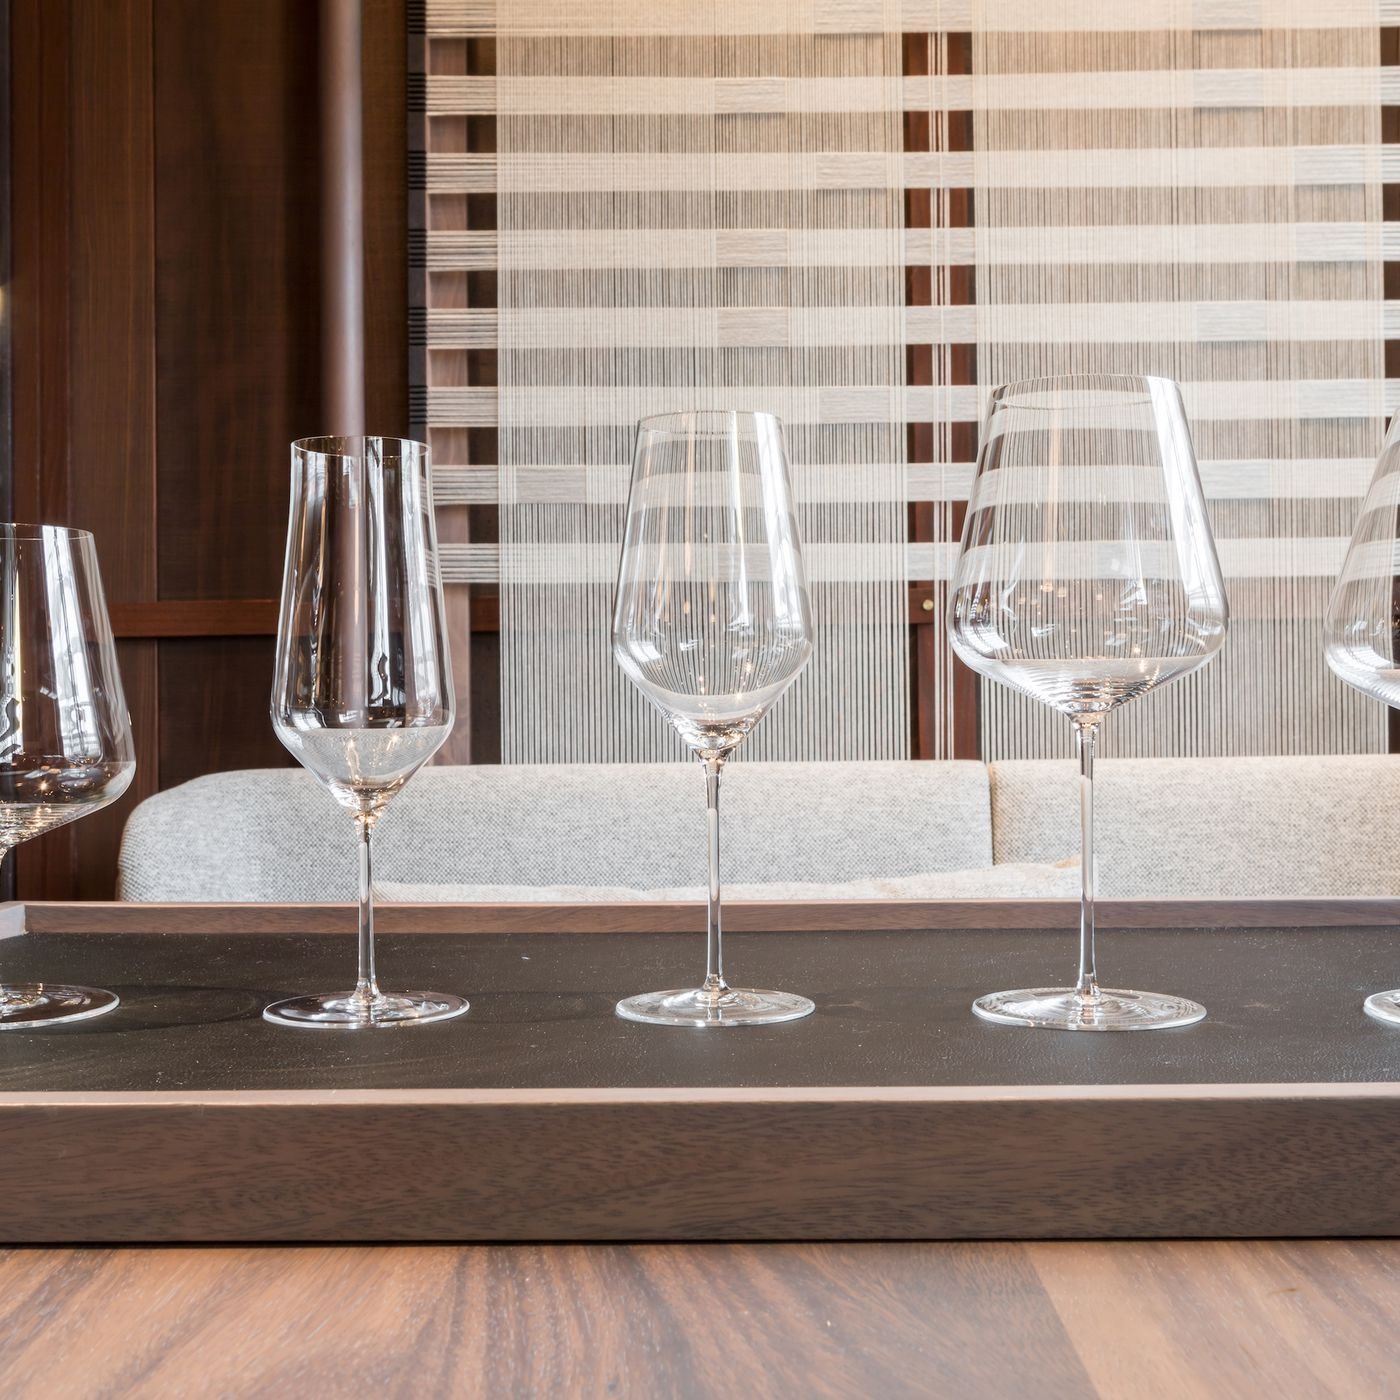 28745835ad0b The Best Wine Glasses Recommended by Sommeliers for Every Scenario - Eater